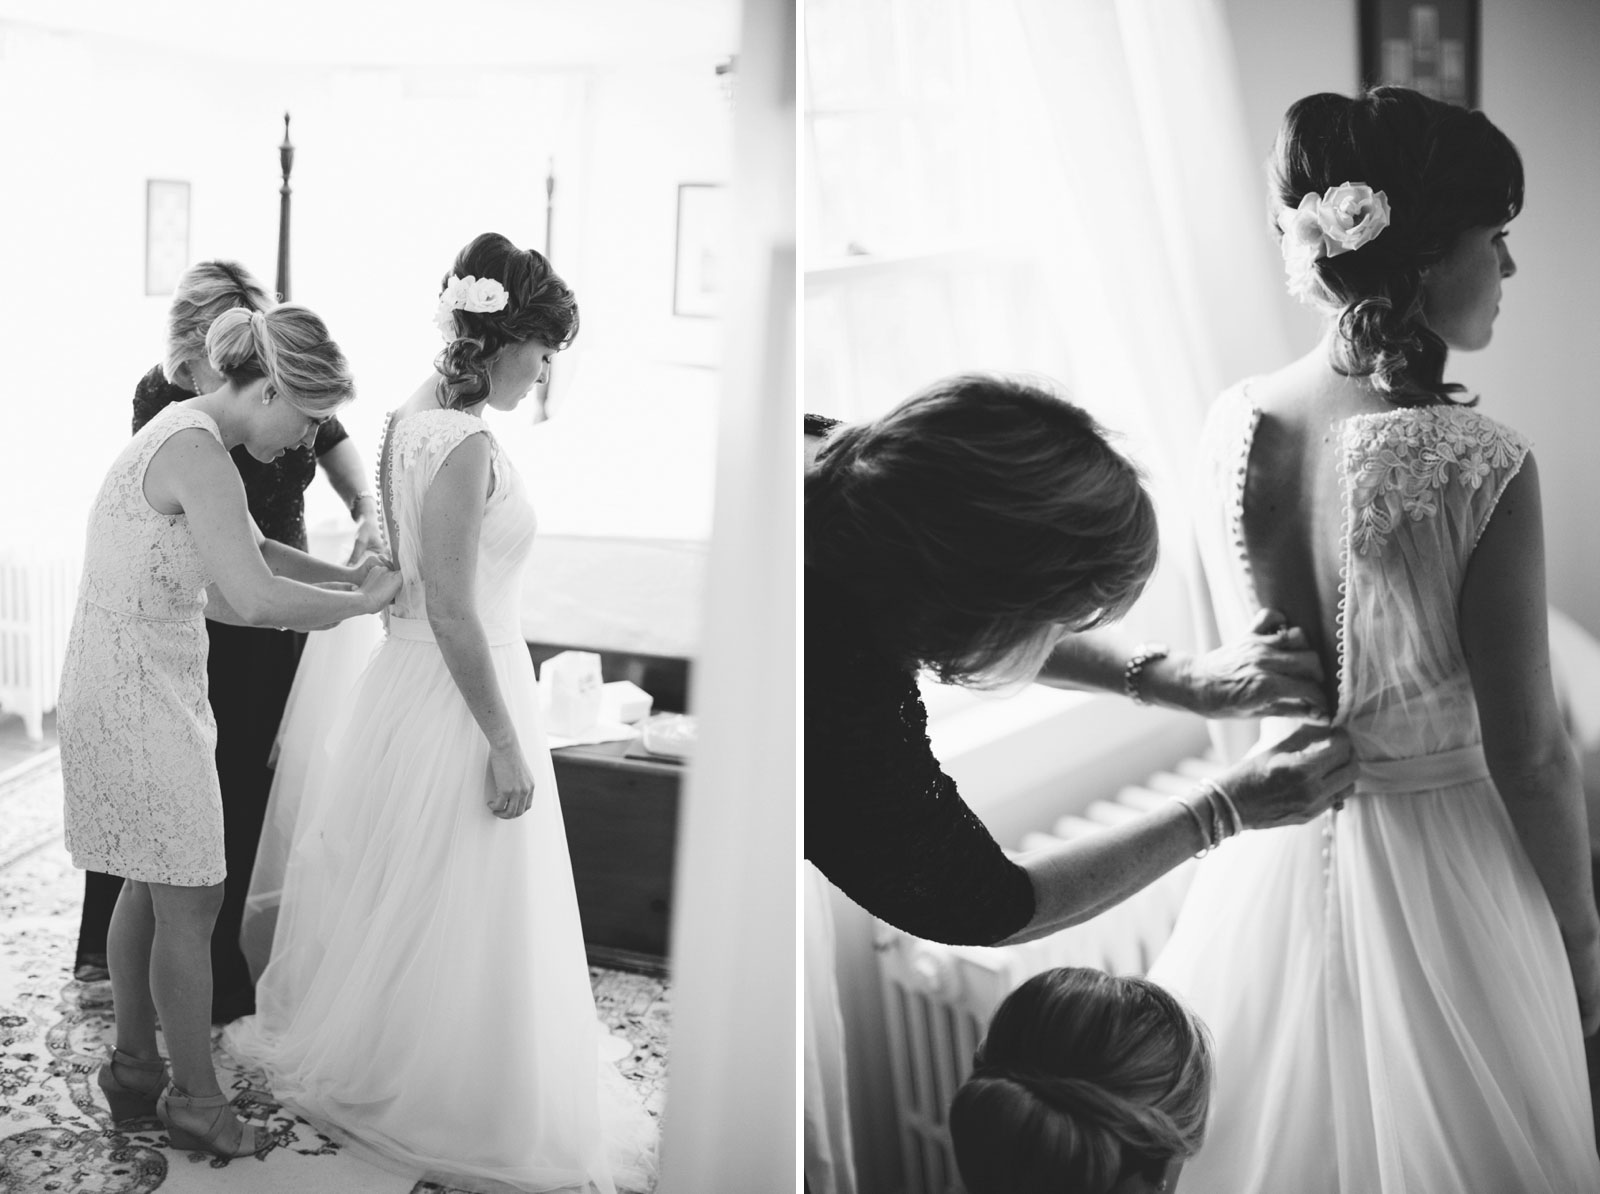 Bridesmaid and mother of the bride help bride into her dress, black and white, natural window light.